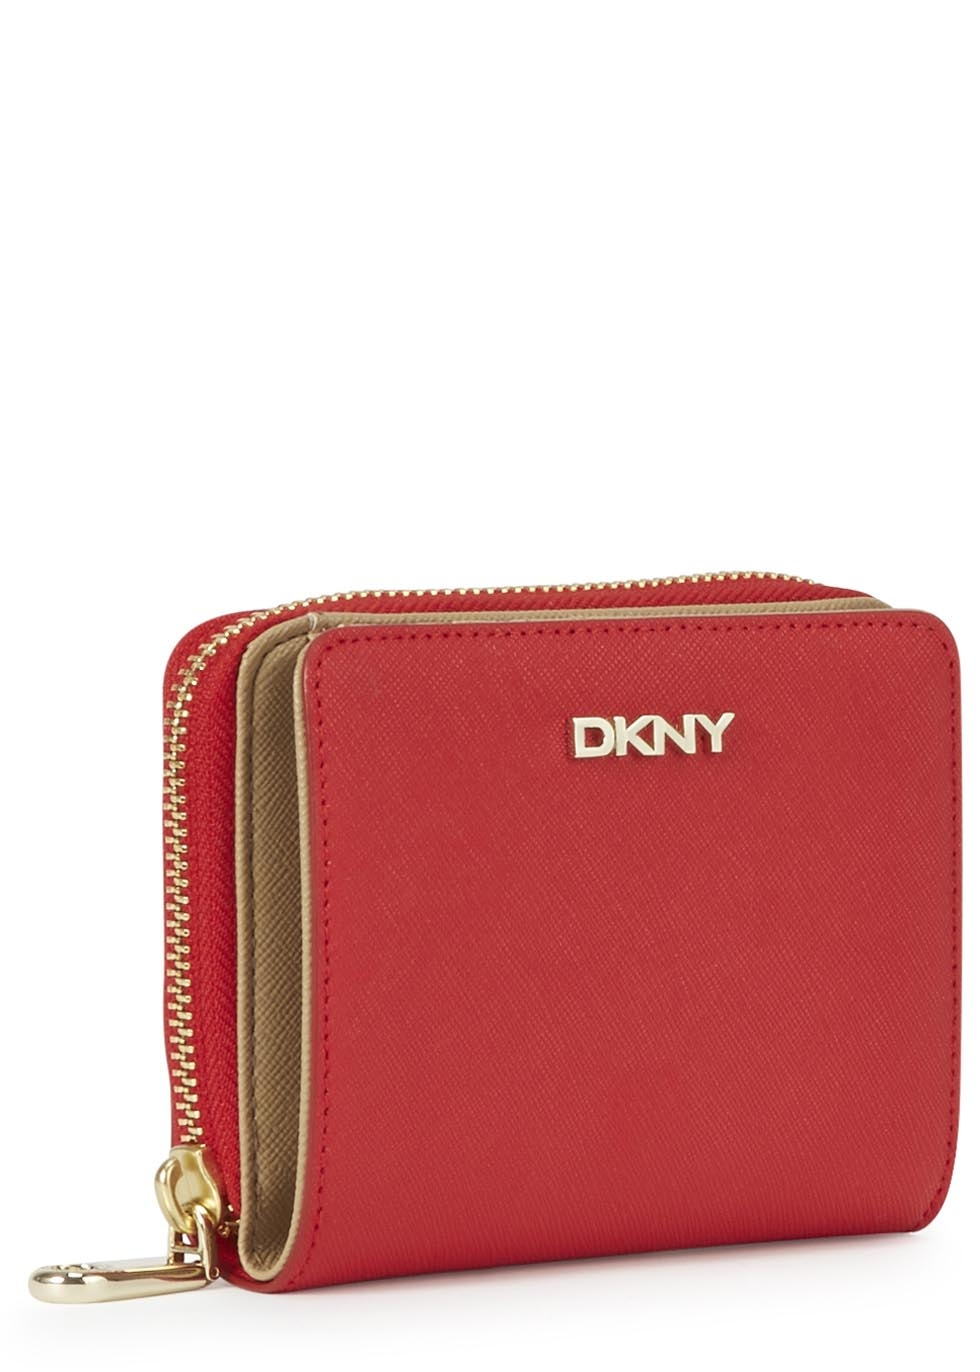 Lyst - Dkny Black Beekman French Grained Leather Carryall ... |Dkny Wallet